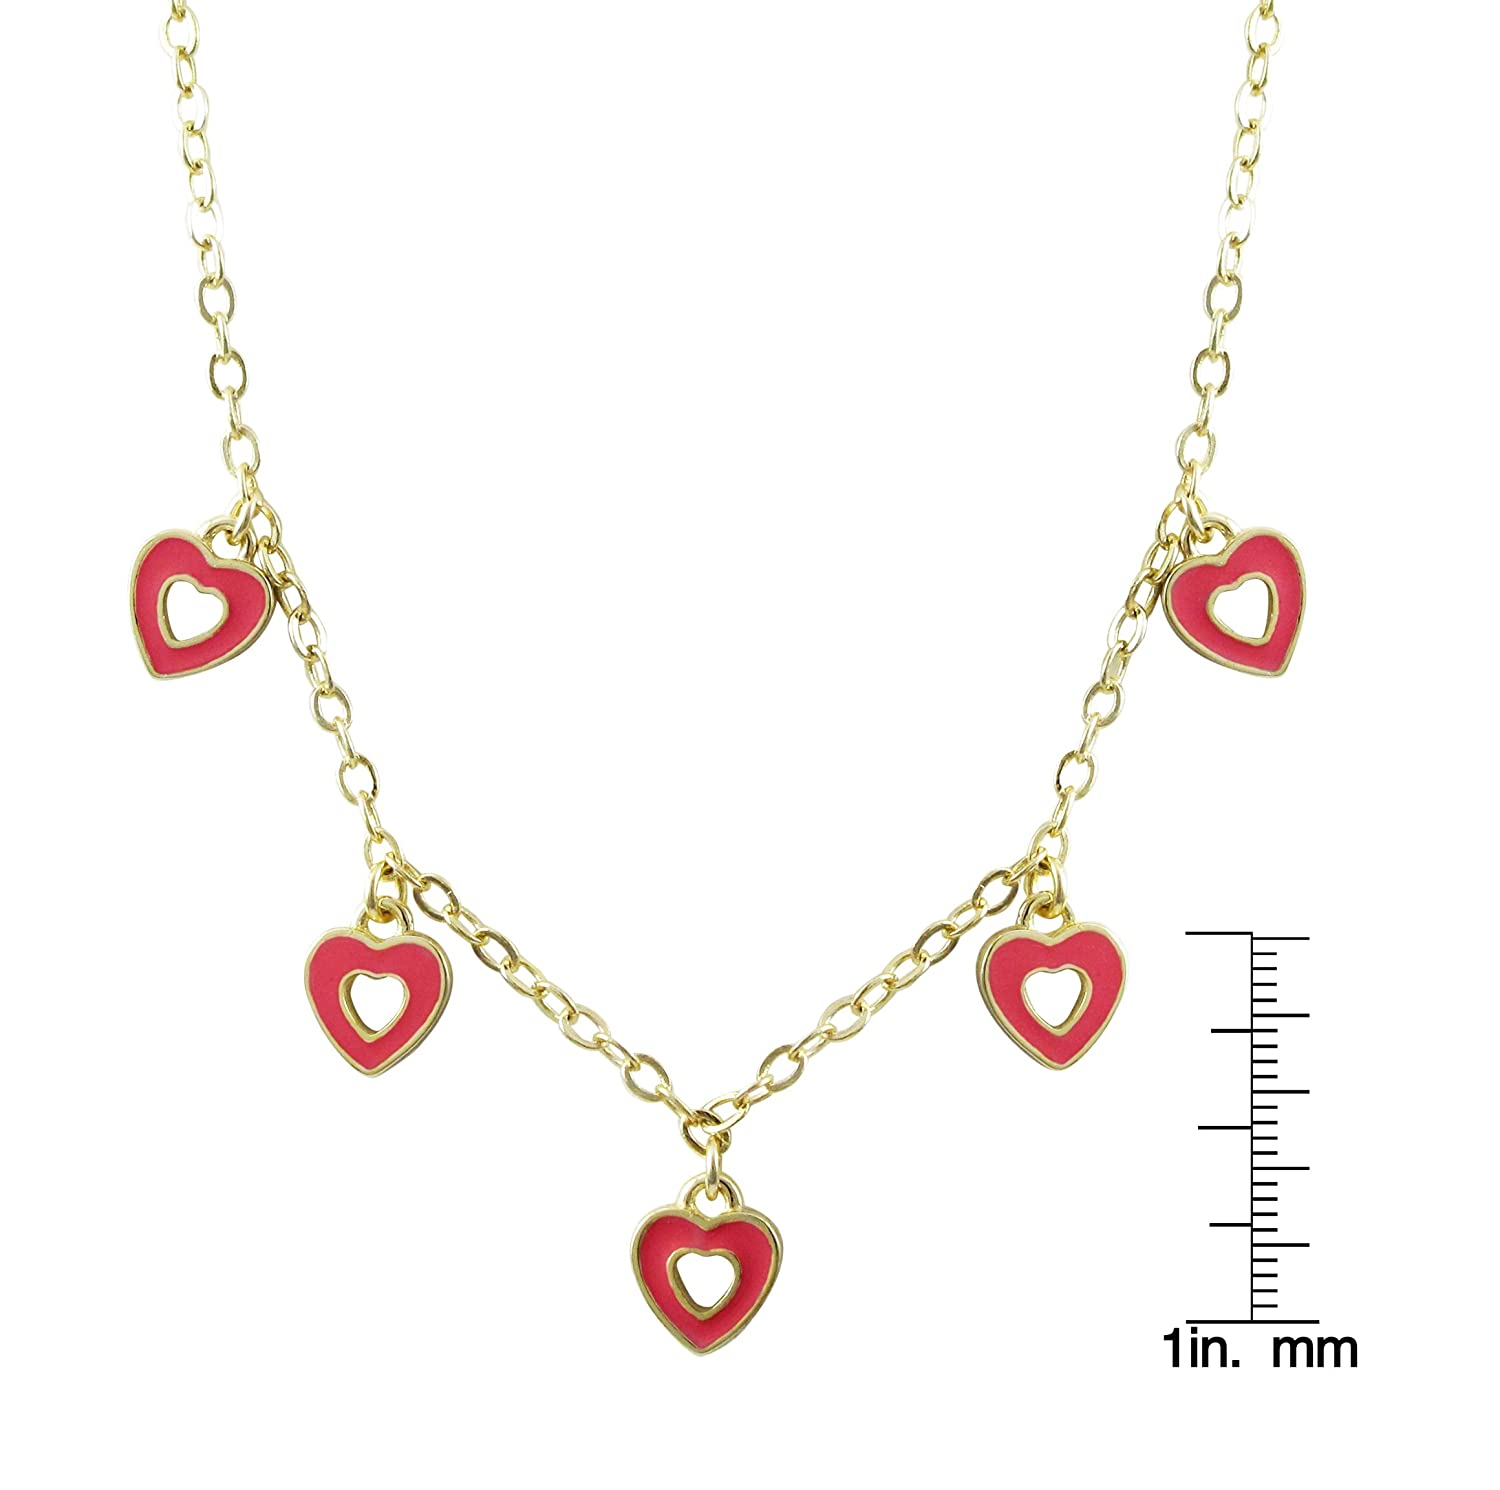 Ivy and Max Gold Finish Enamel Open Heart Childrens Dangling Charm Necklace